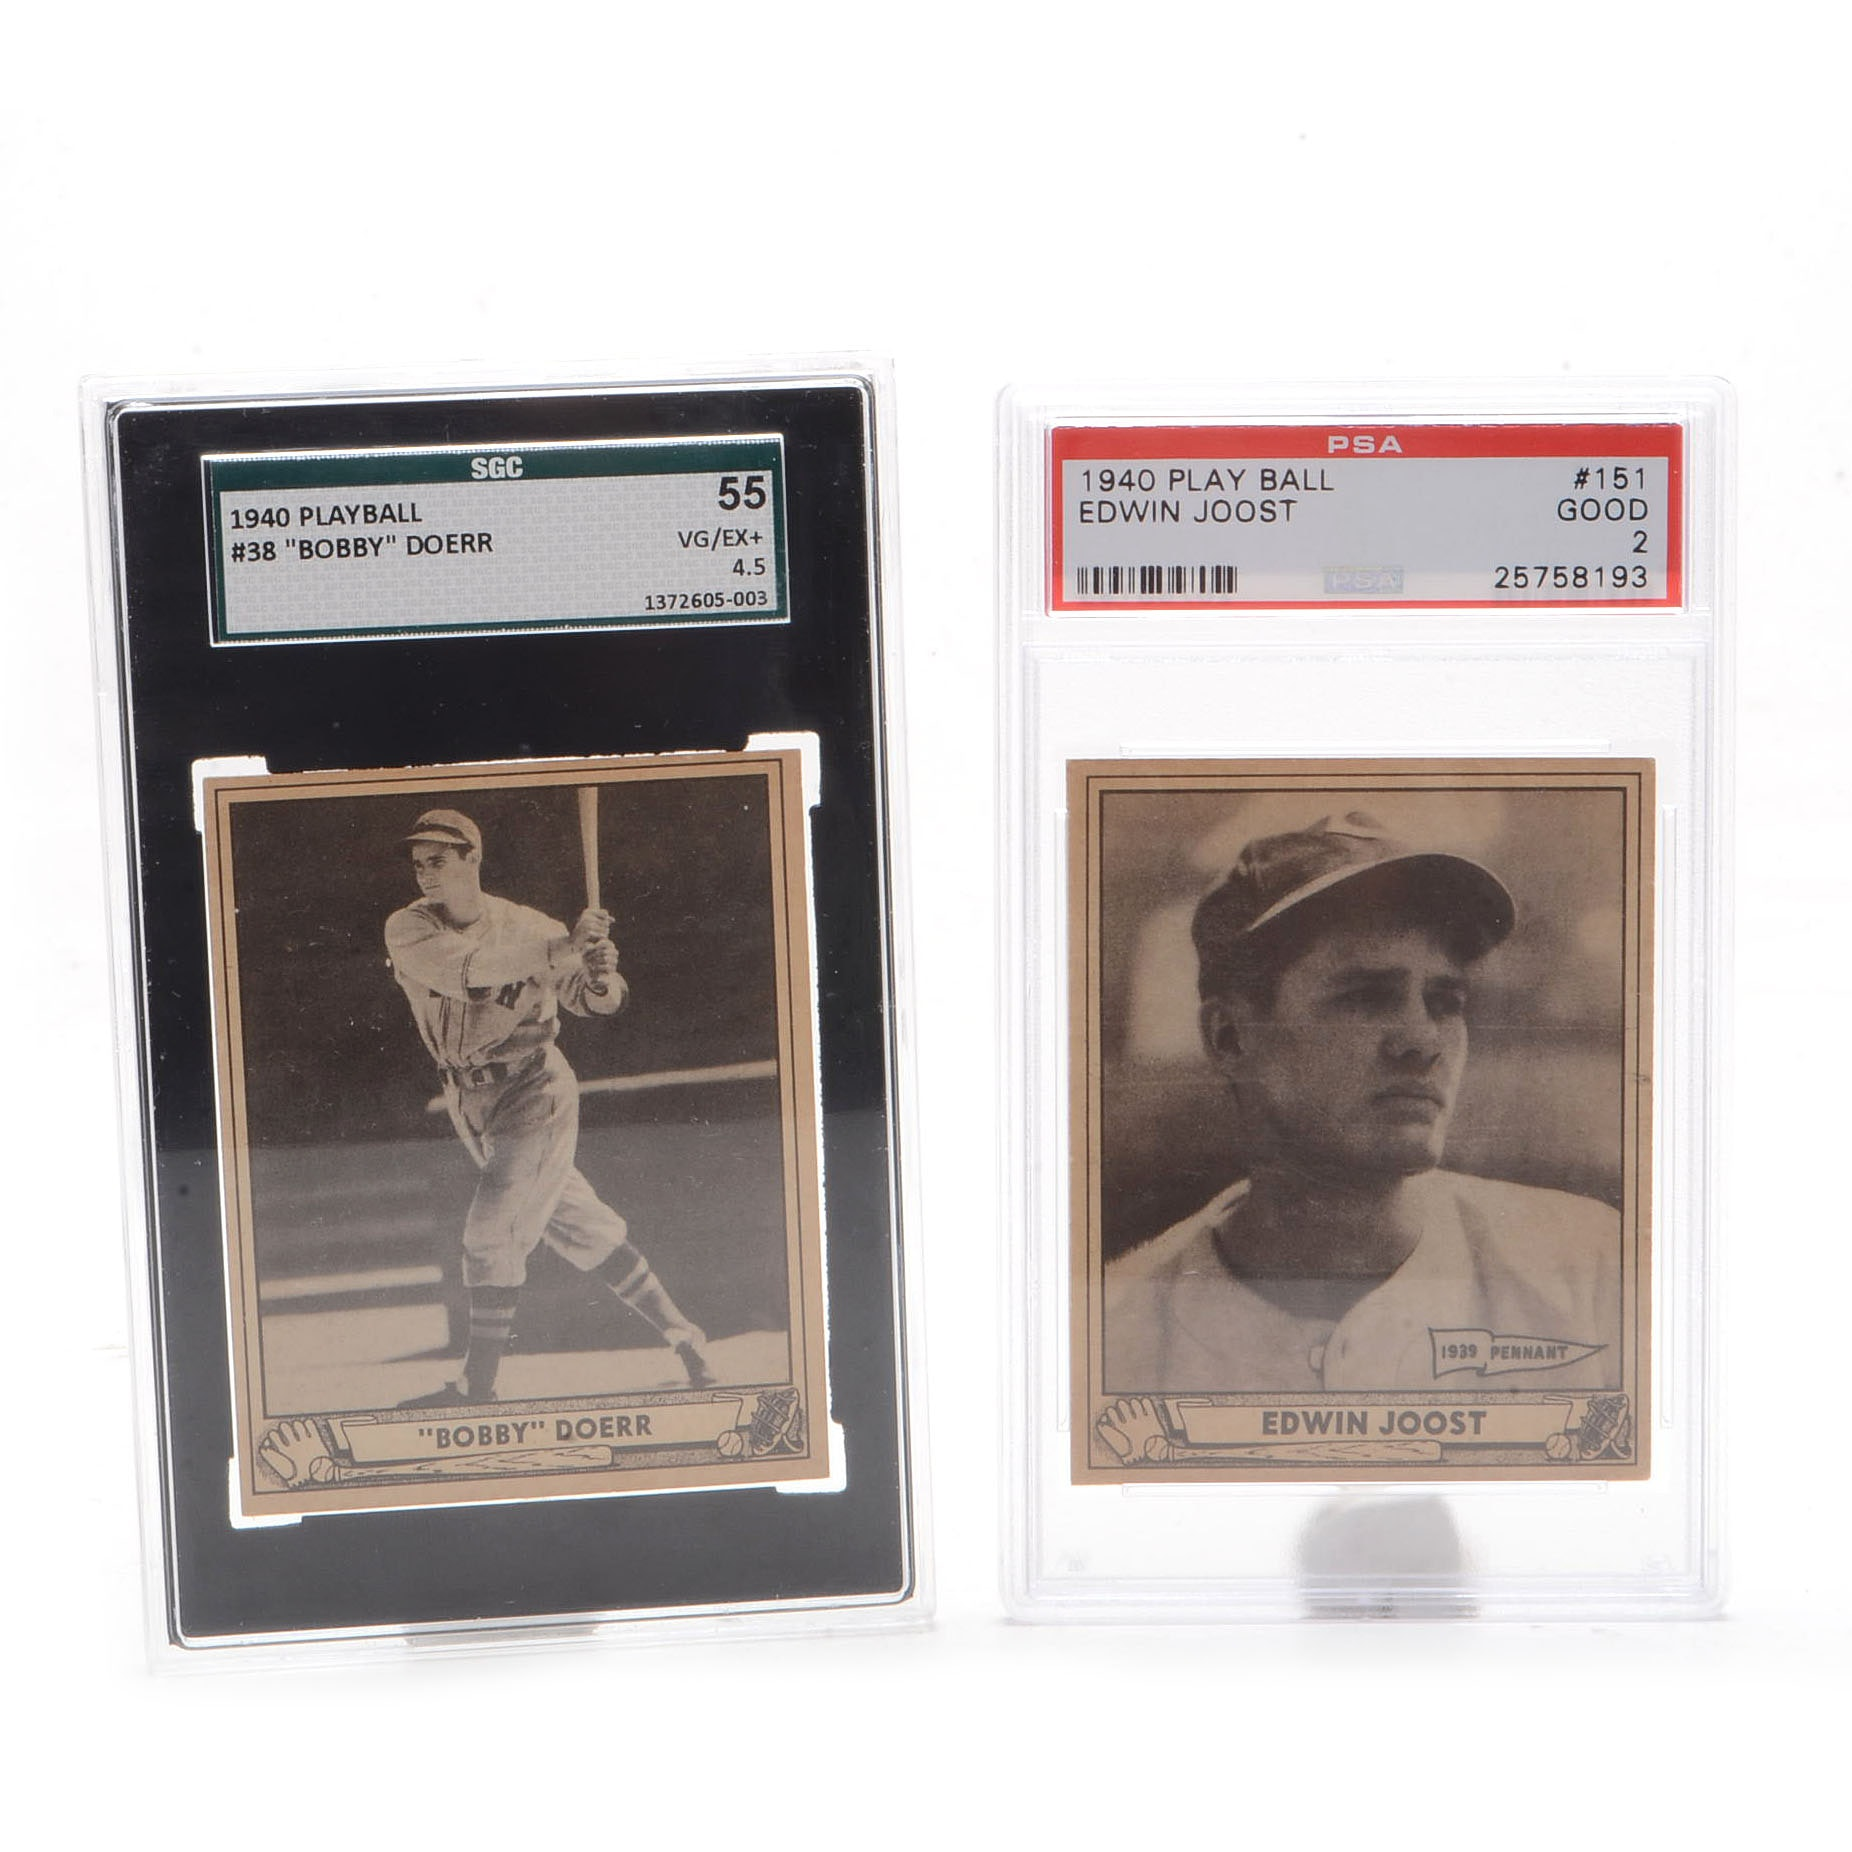 1940 Bobby Doerr and Edwin Joost Graded Playball Cards